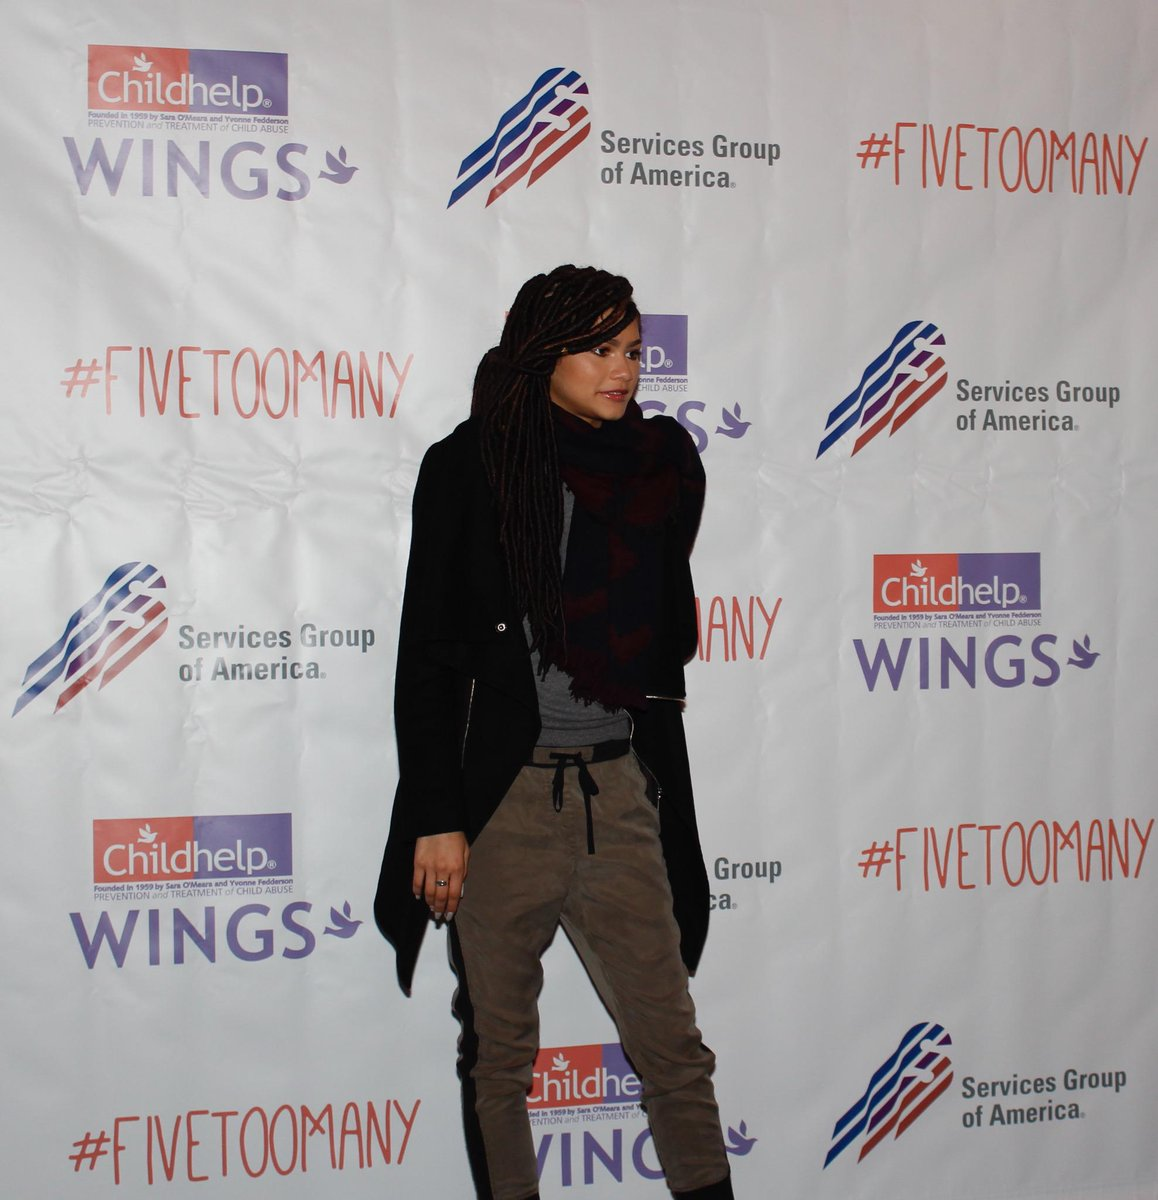 @Disney's @Zendaya has arrived at the 2015 Childhelp Wings Fashion Show! #FiveTooMany http://t.co/TKFAQOca3Q